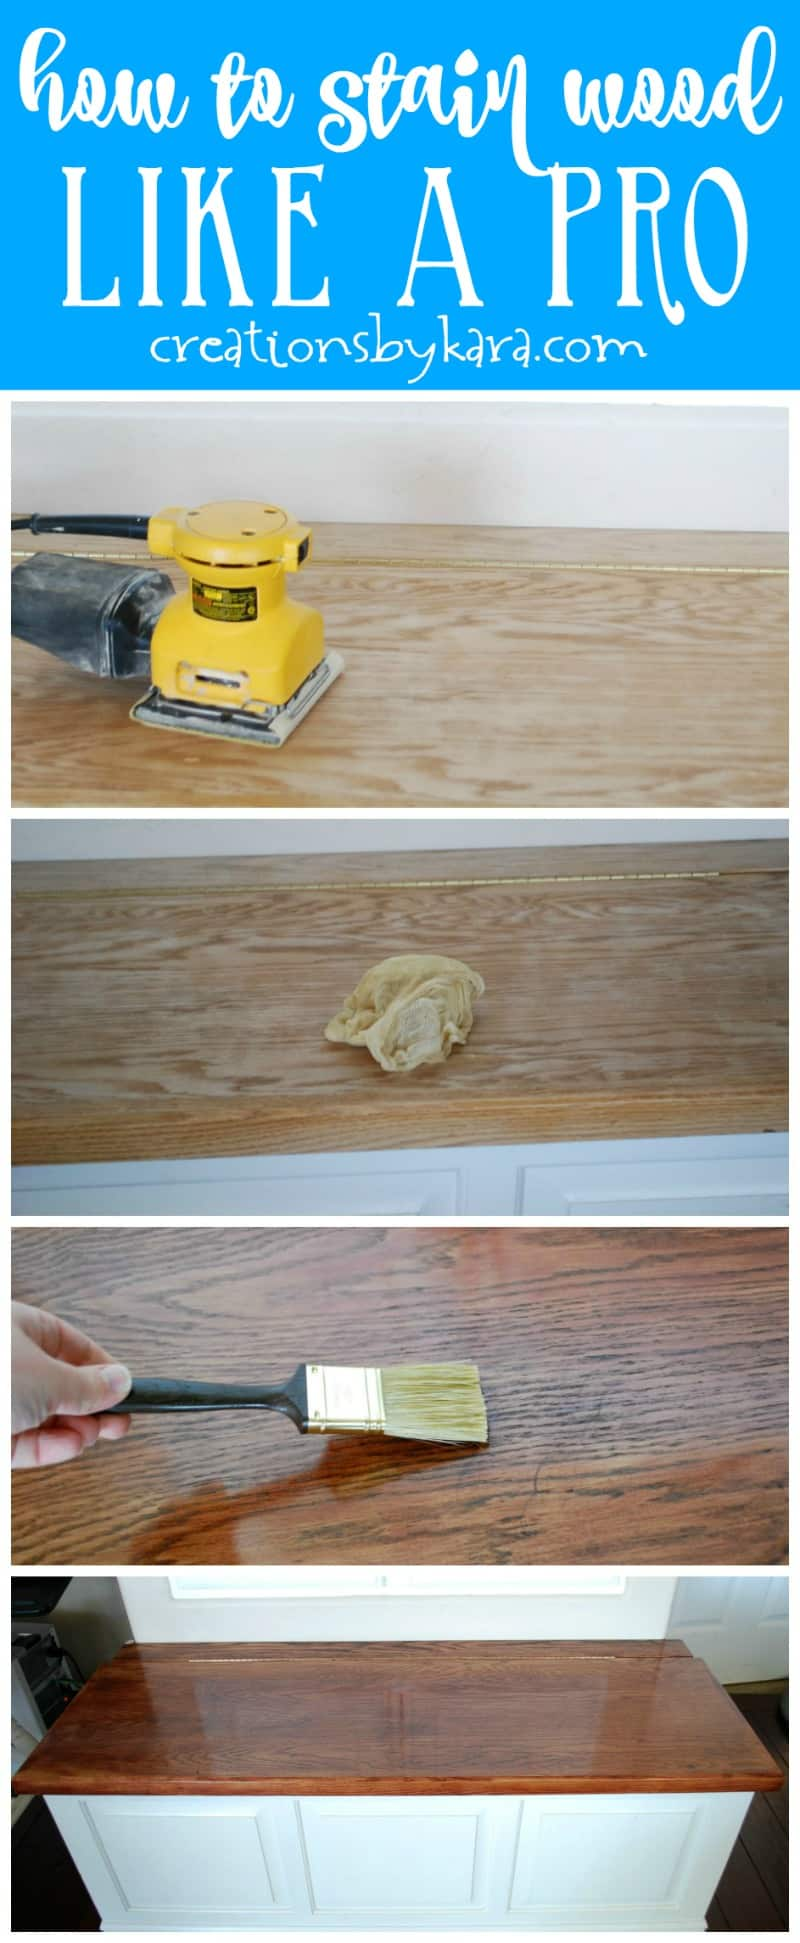 Learn how to stain wood like a pro with these tips and tricks. Improve your DIY skills with this step by step tutorial! #stainwood #woodstain #diy #woodworking